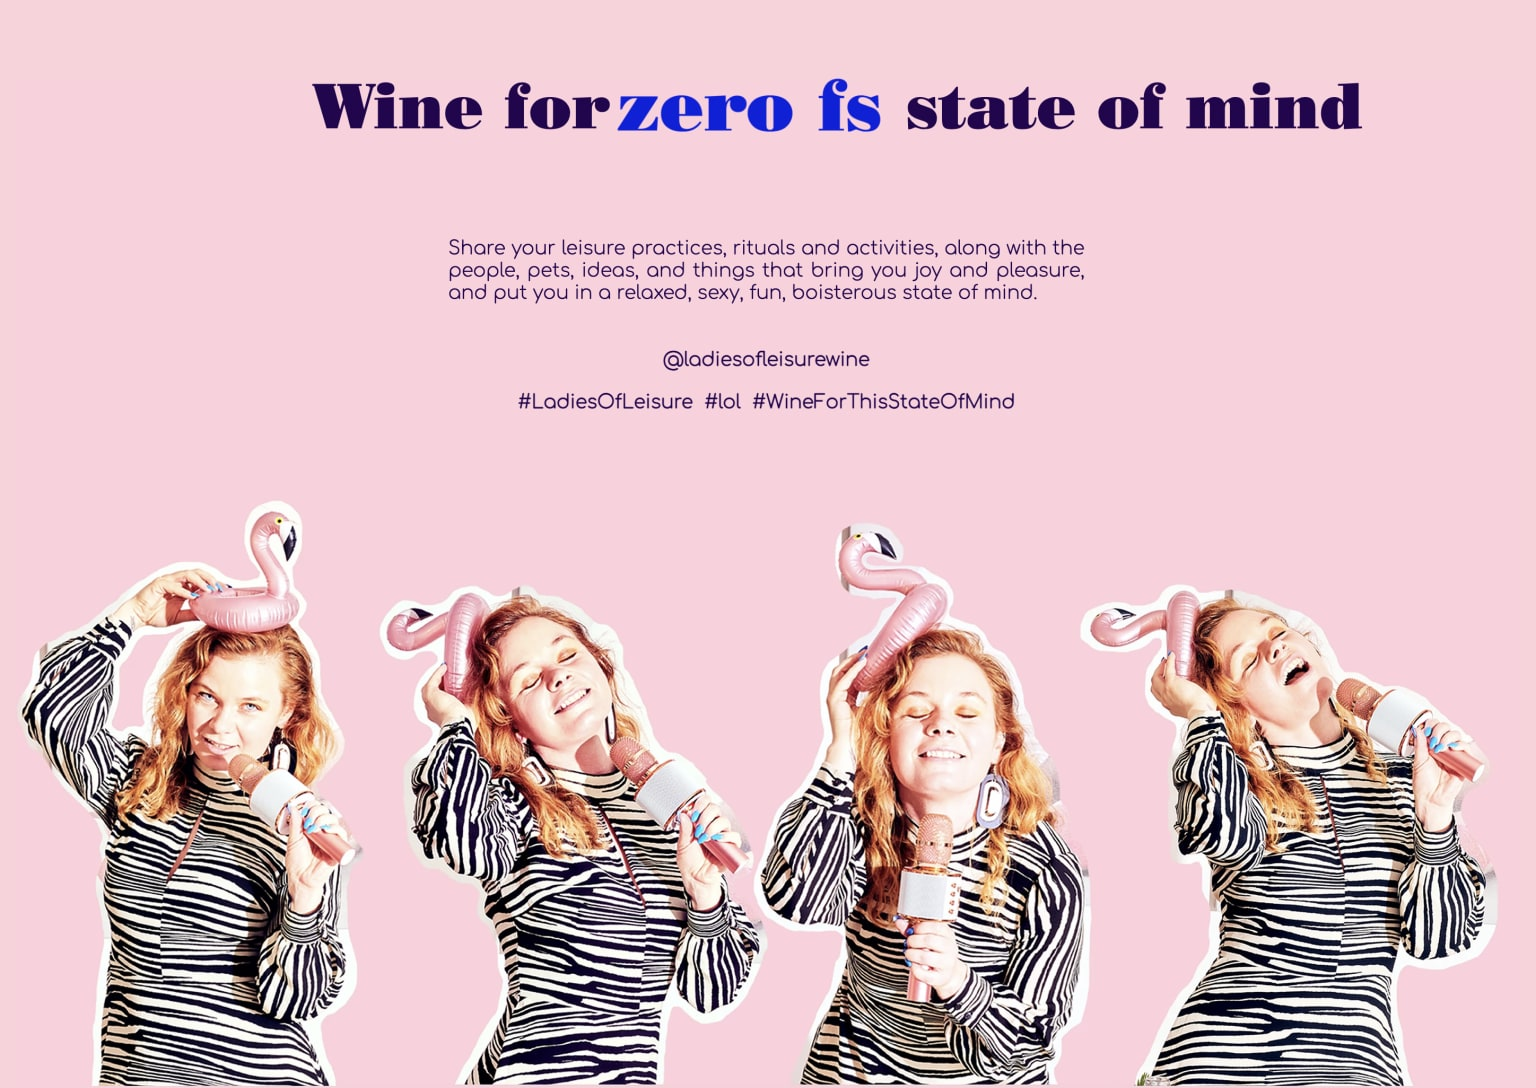 Ladies of Leisure Wine Web Launch Campaign